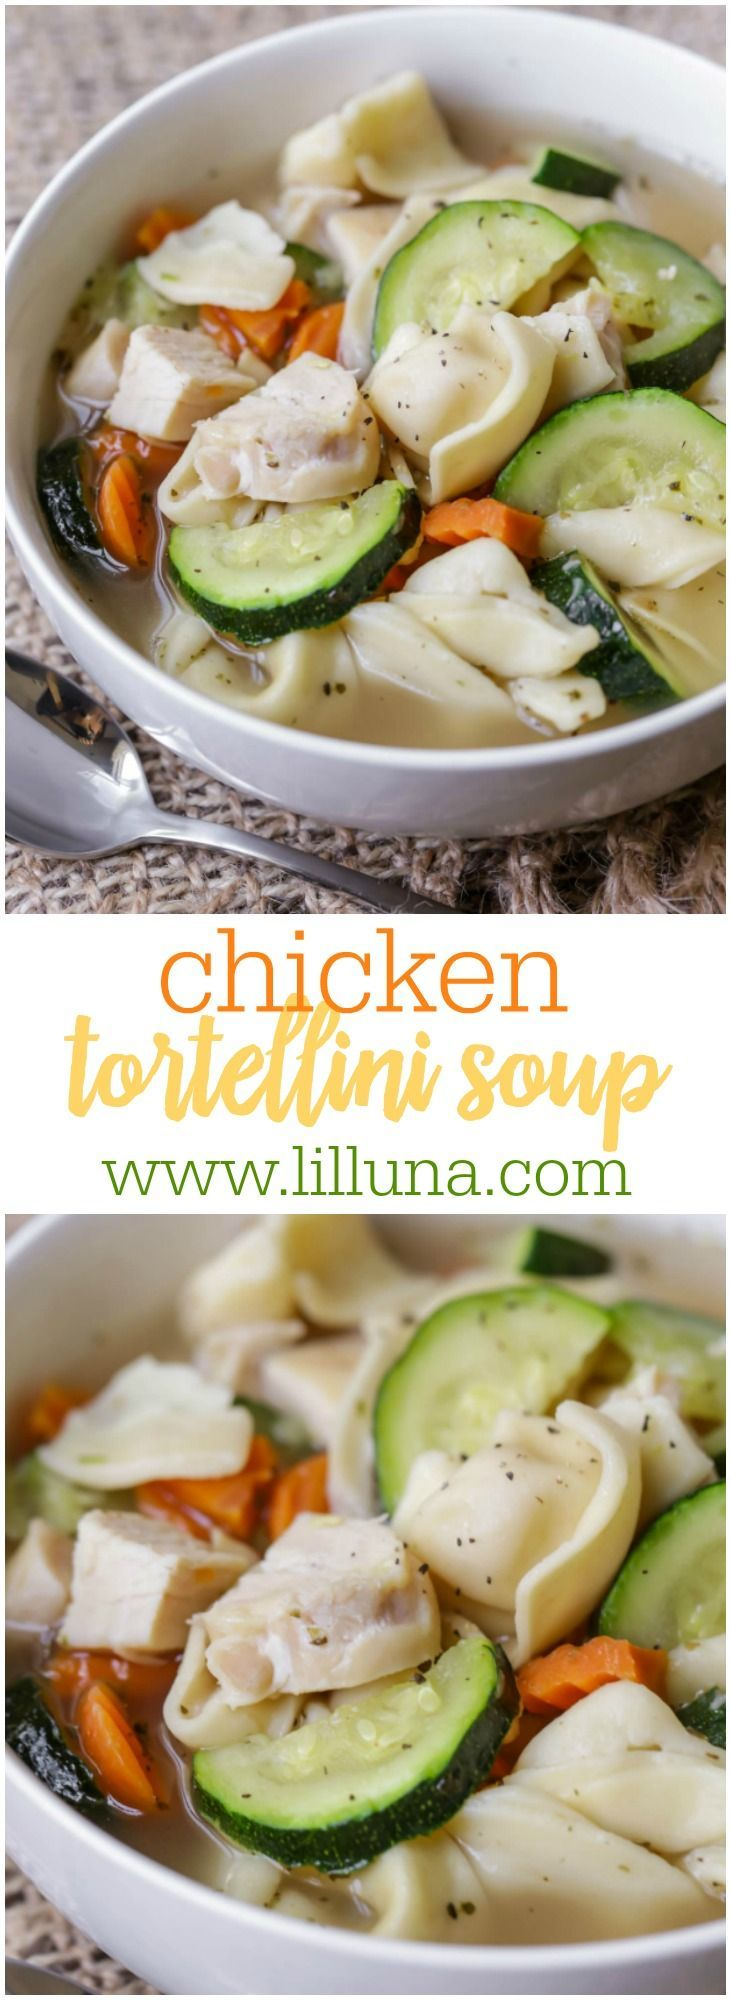 Chicken Tortellini Soup - a more flavorful version of Chicken Noodle Soup with cheese tortellini and zucchini.